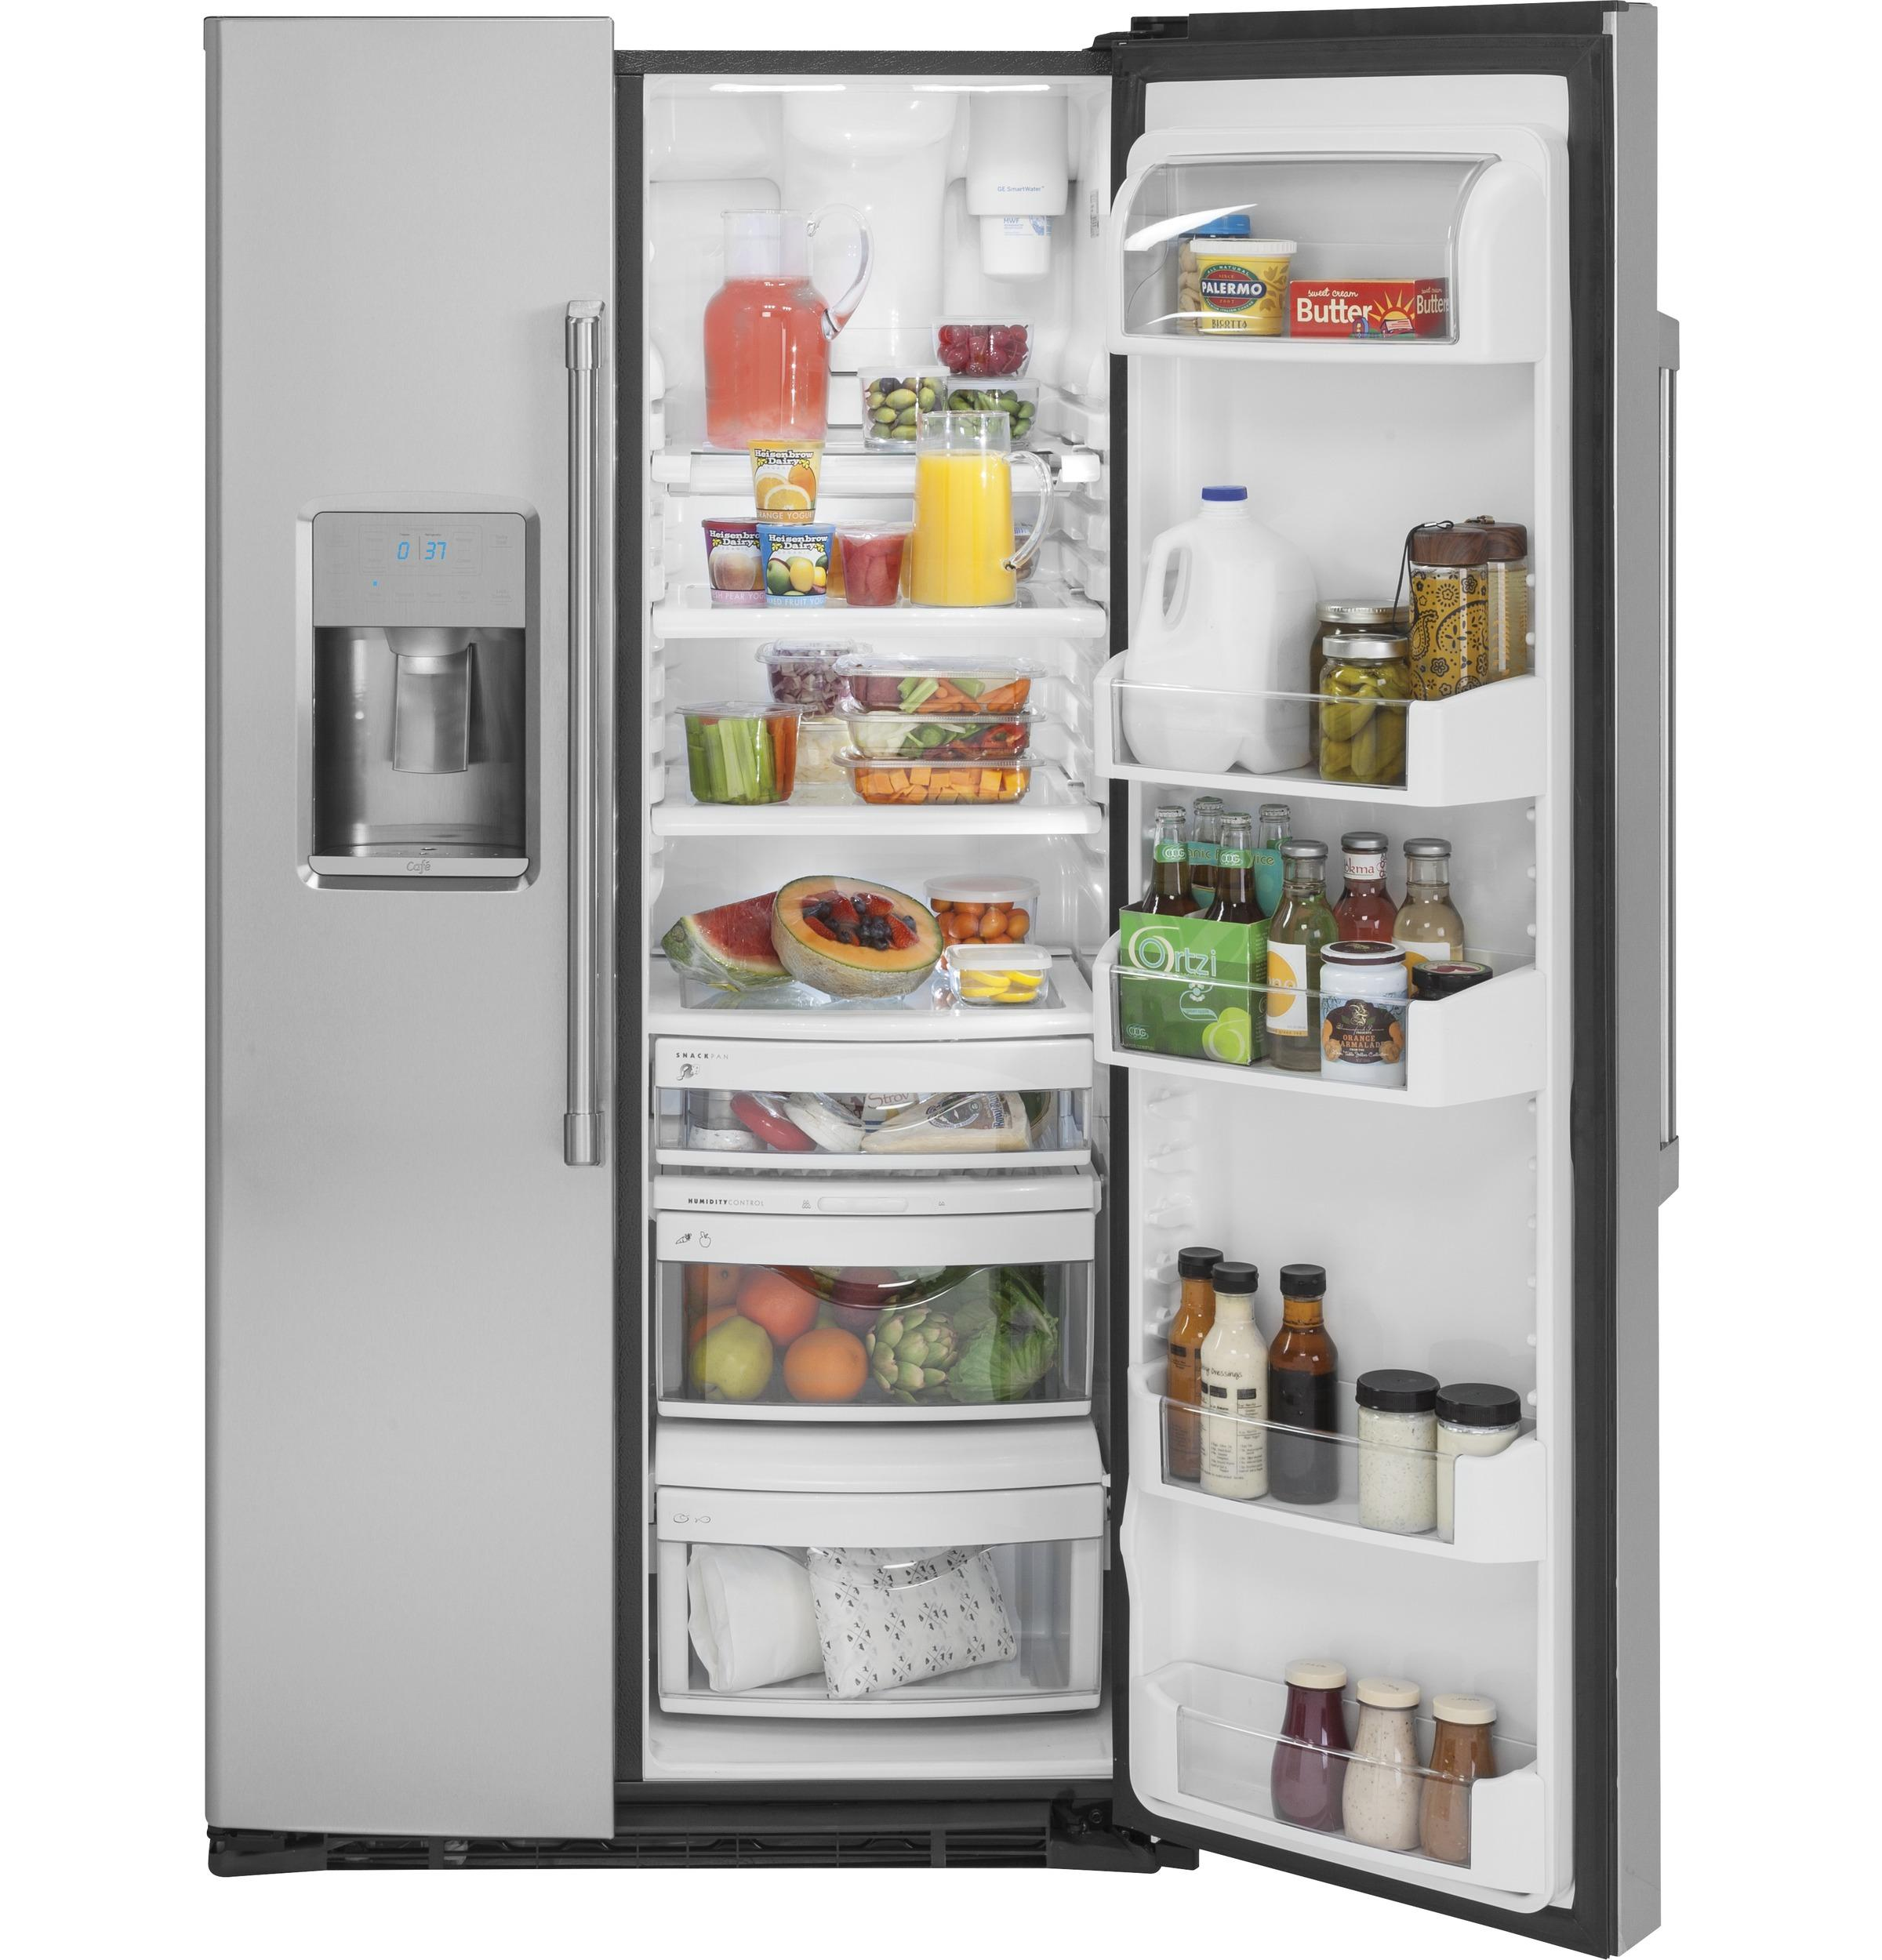 GE Cafe™ Series 21.9 Cu. Ft. Counter Depth Side By